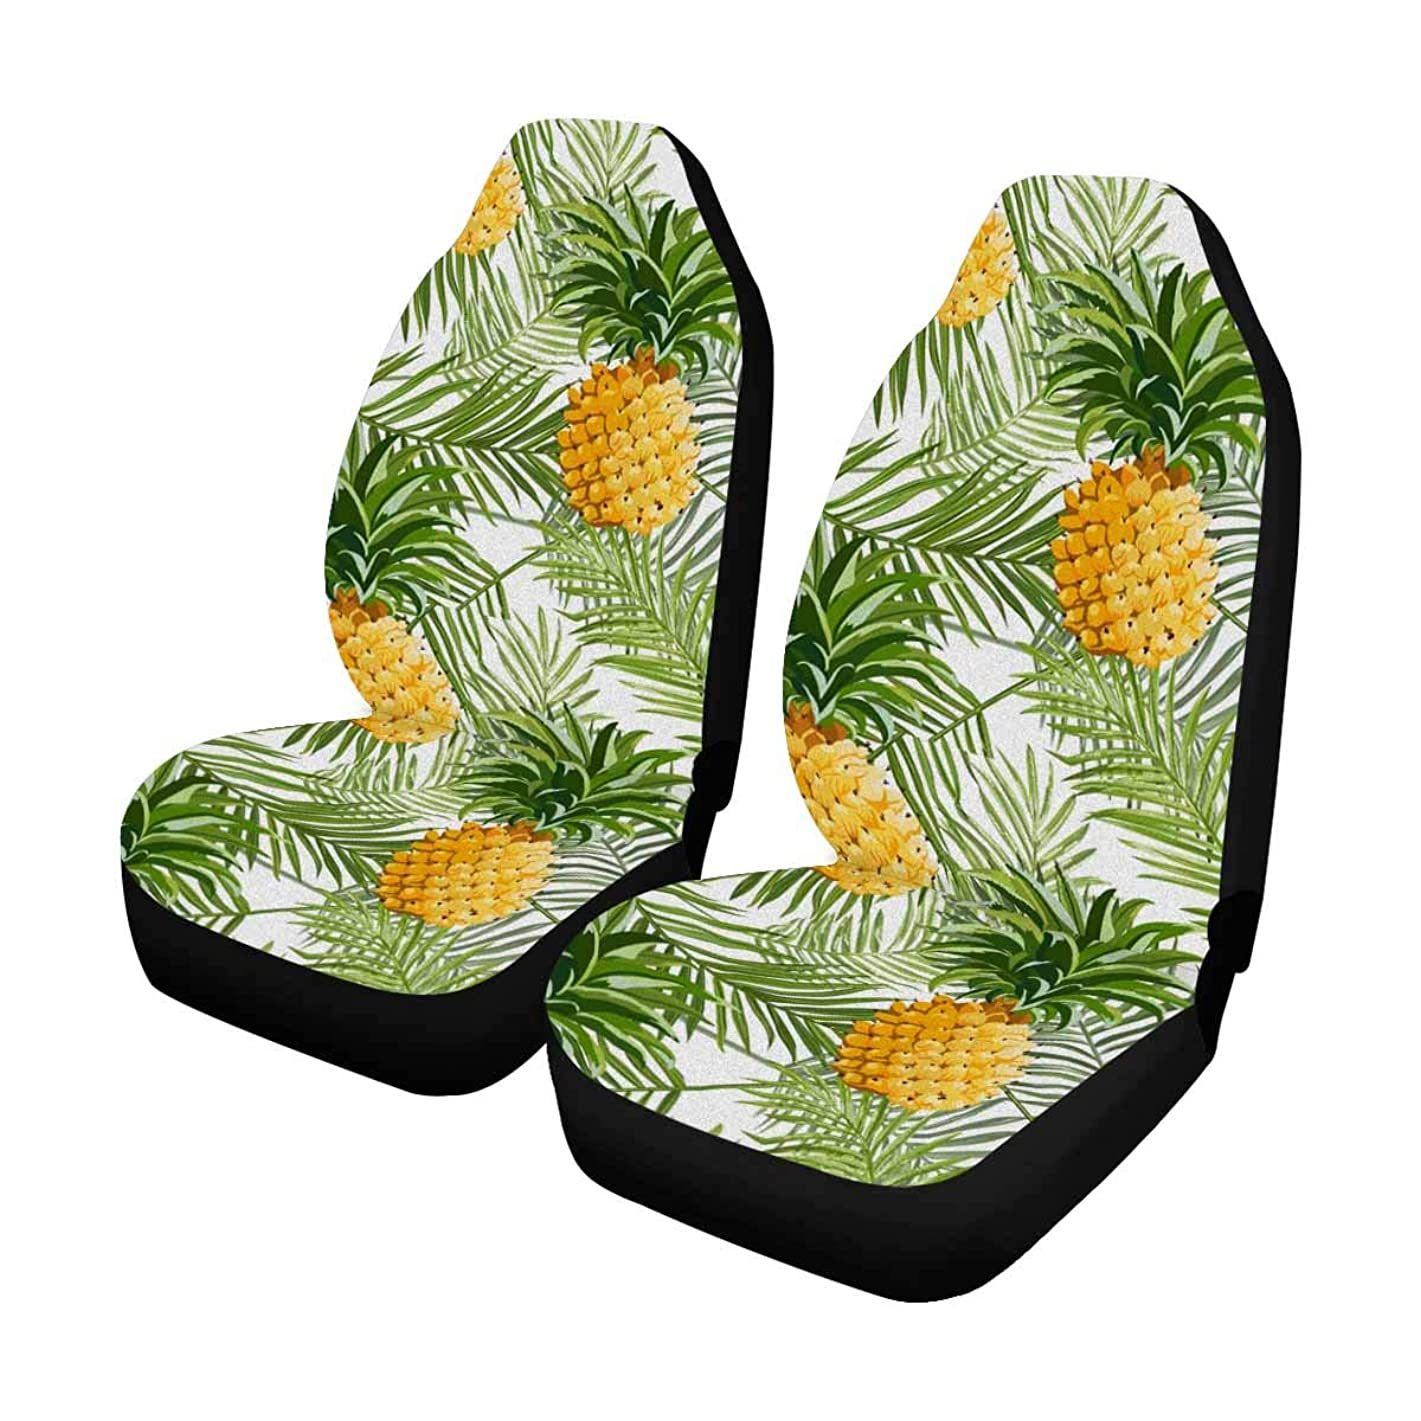 INTERESTPRINT Tropical Palm Leaves and Pineapples Auto Seat Covers Full Set of 2, Bucket Seat Protector Car Seat Cushions for Car, SUV, Truck or Van